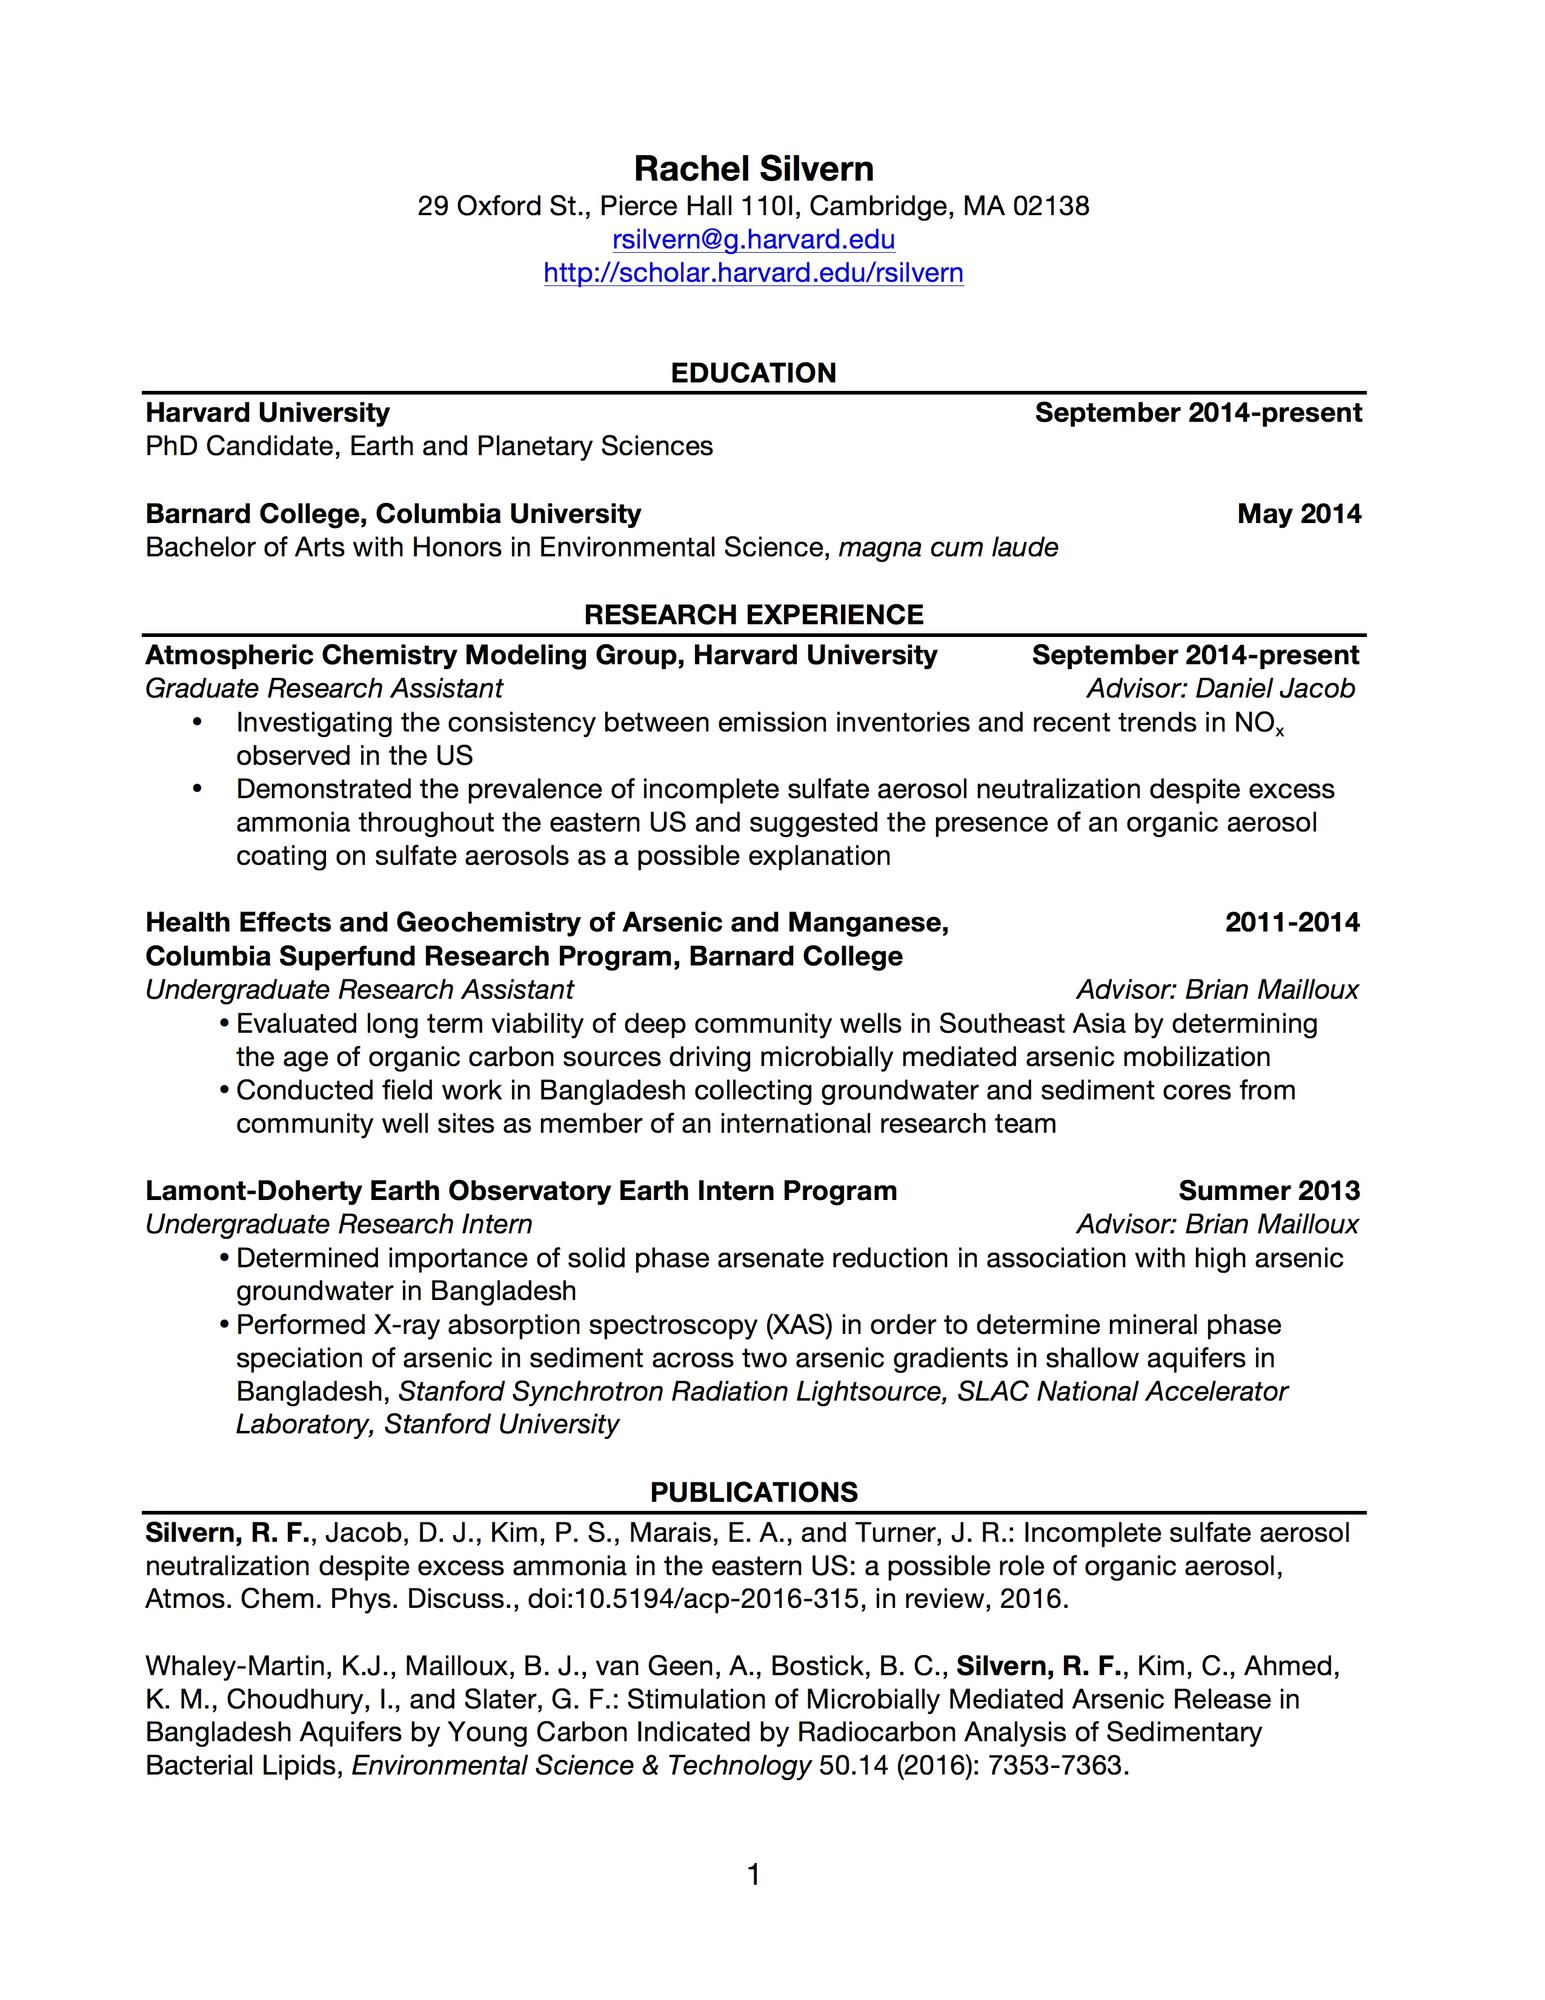 fire lieutenant resume templates resume construction foreman good